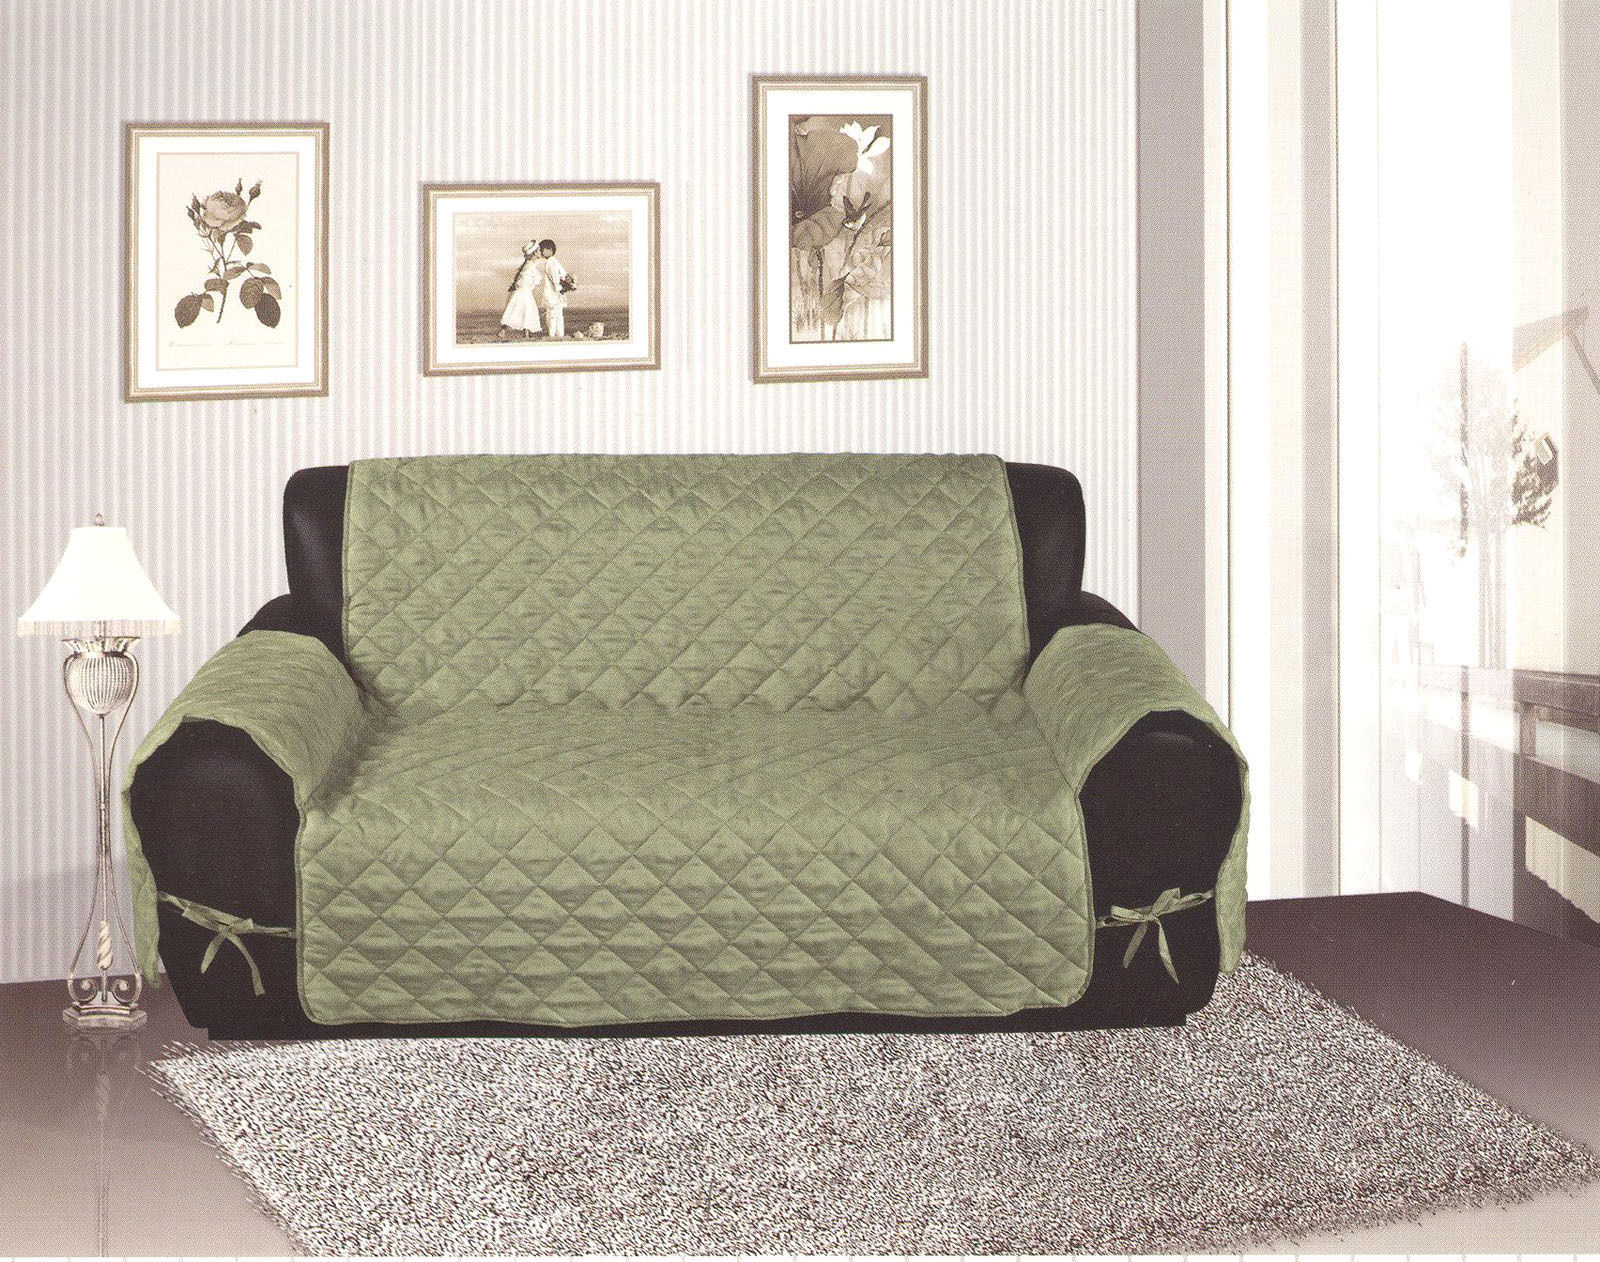 fresh pet cover for sofa collection-Fantastic Pet Cover for sofa Decoration